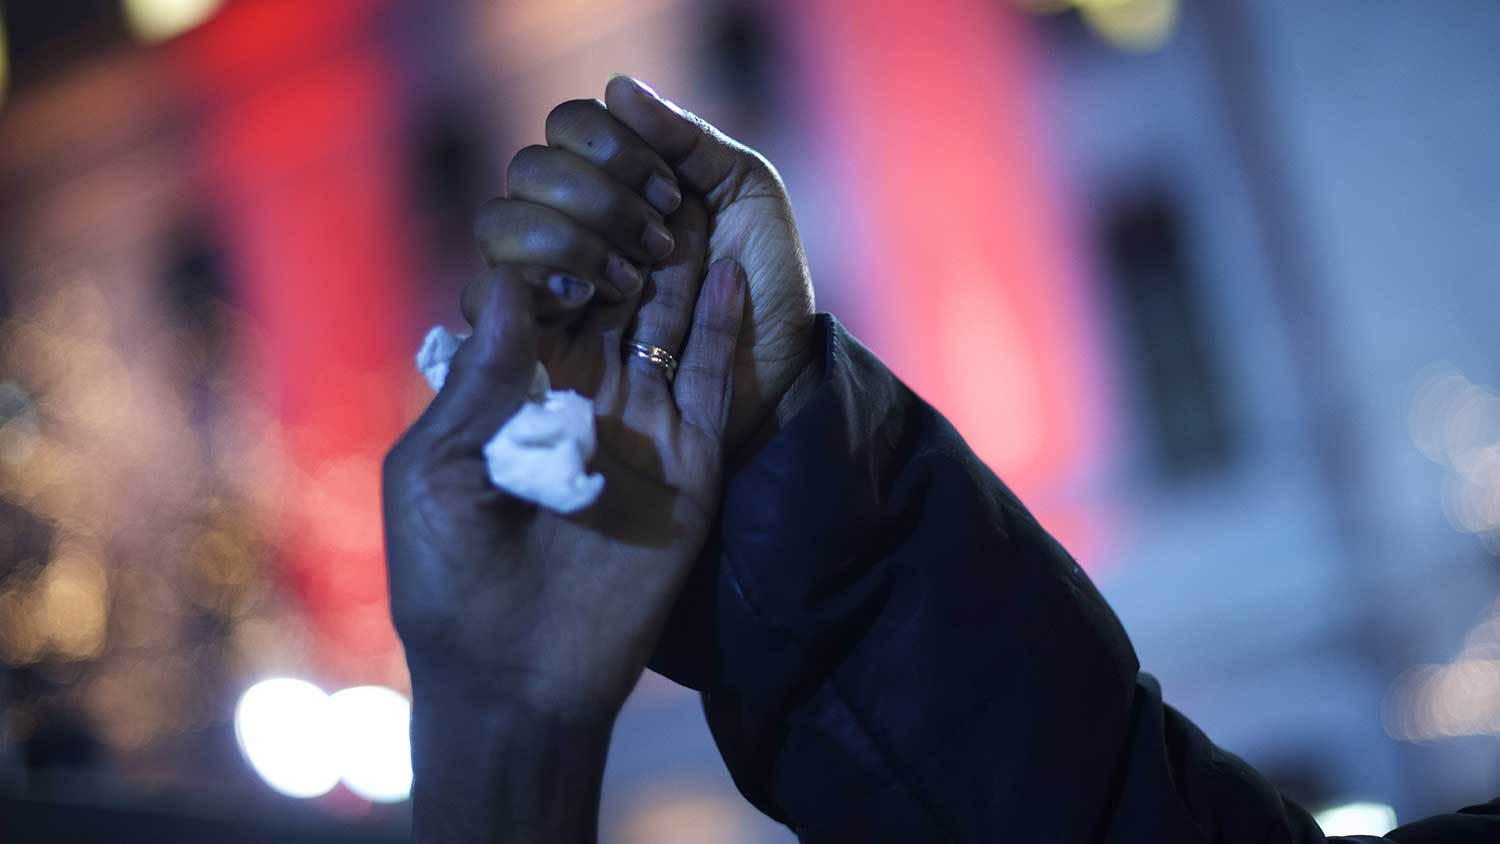 Demonstrators clutch hands while gathering in Philadelphia to protest the grand jury decision during a Christmas Tree lighting ceremony at City Hall on Dec. 3, 2014.